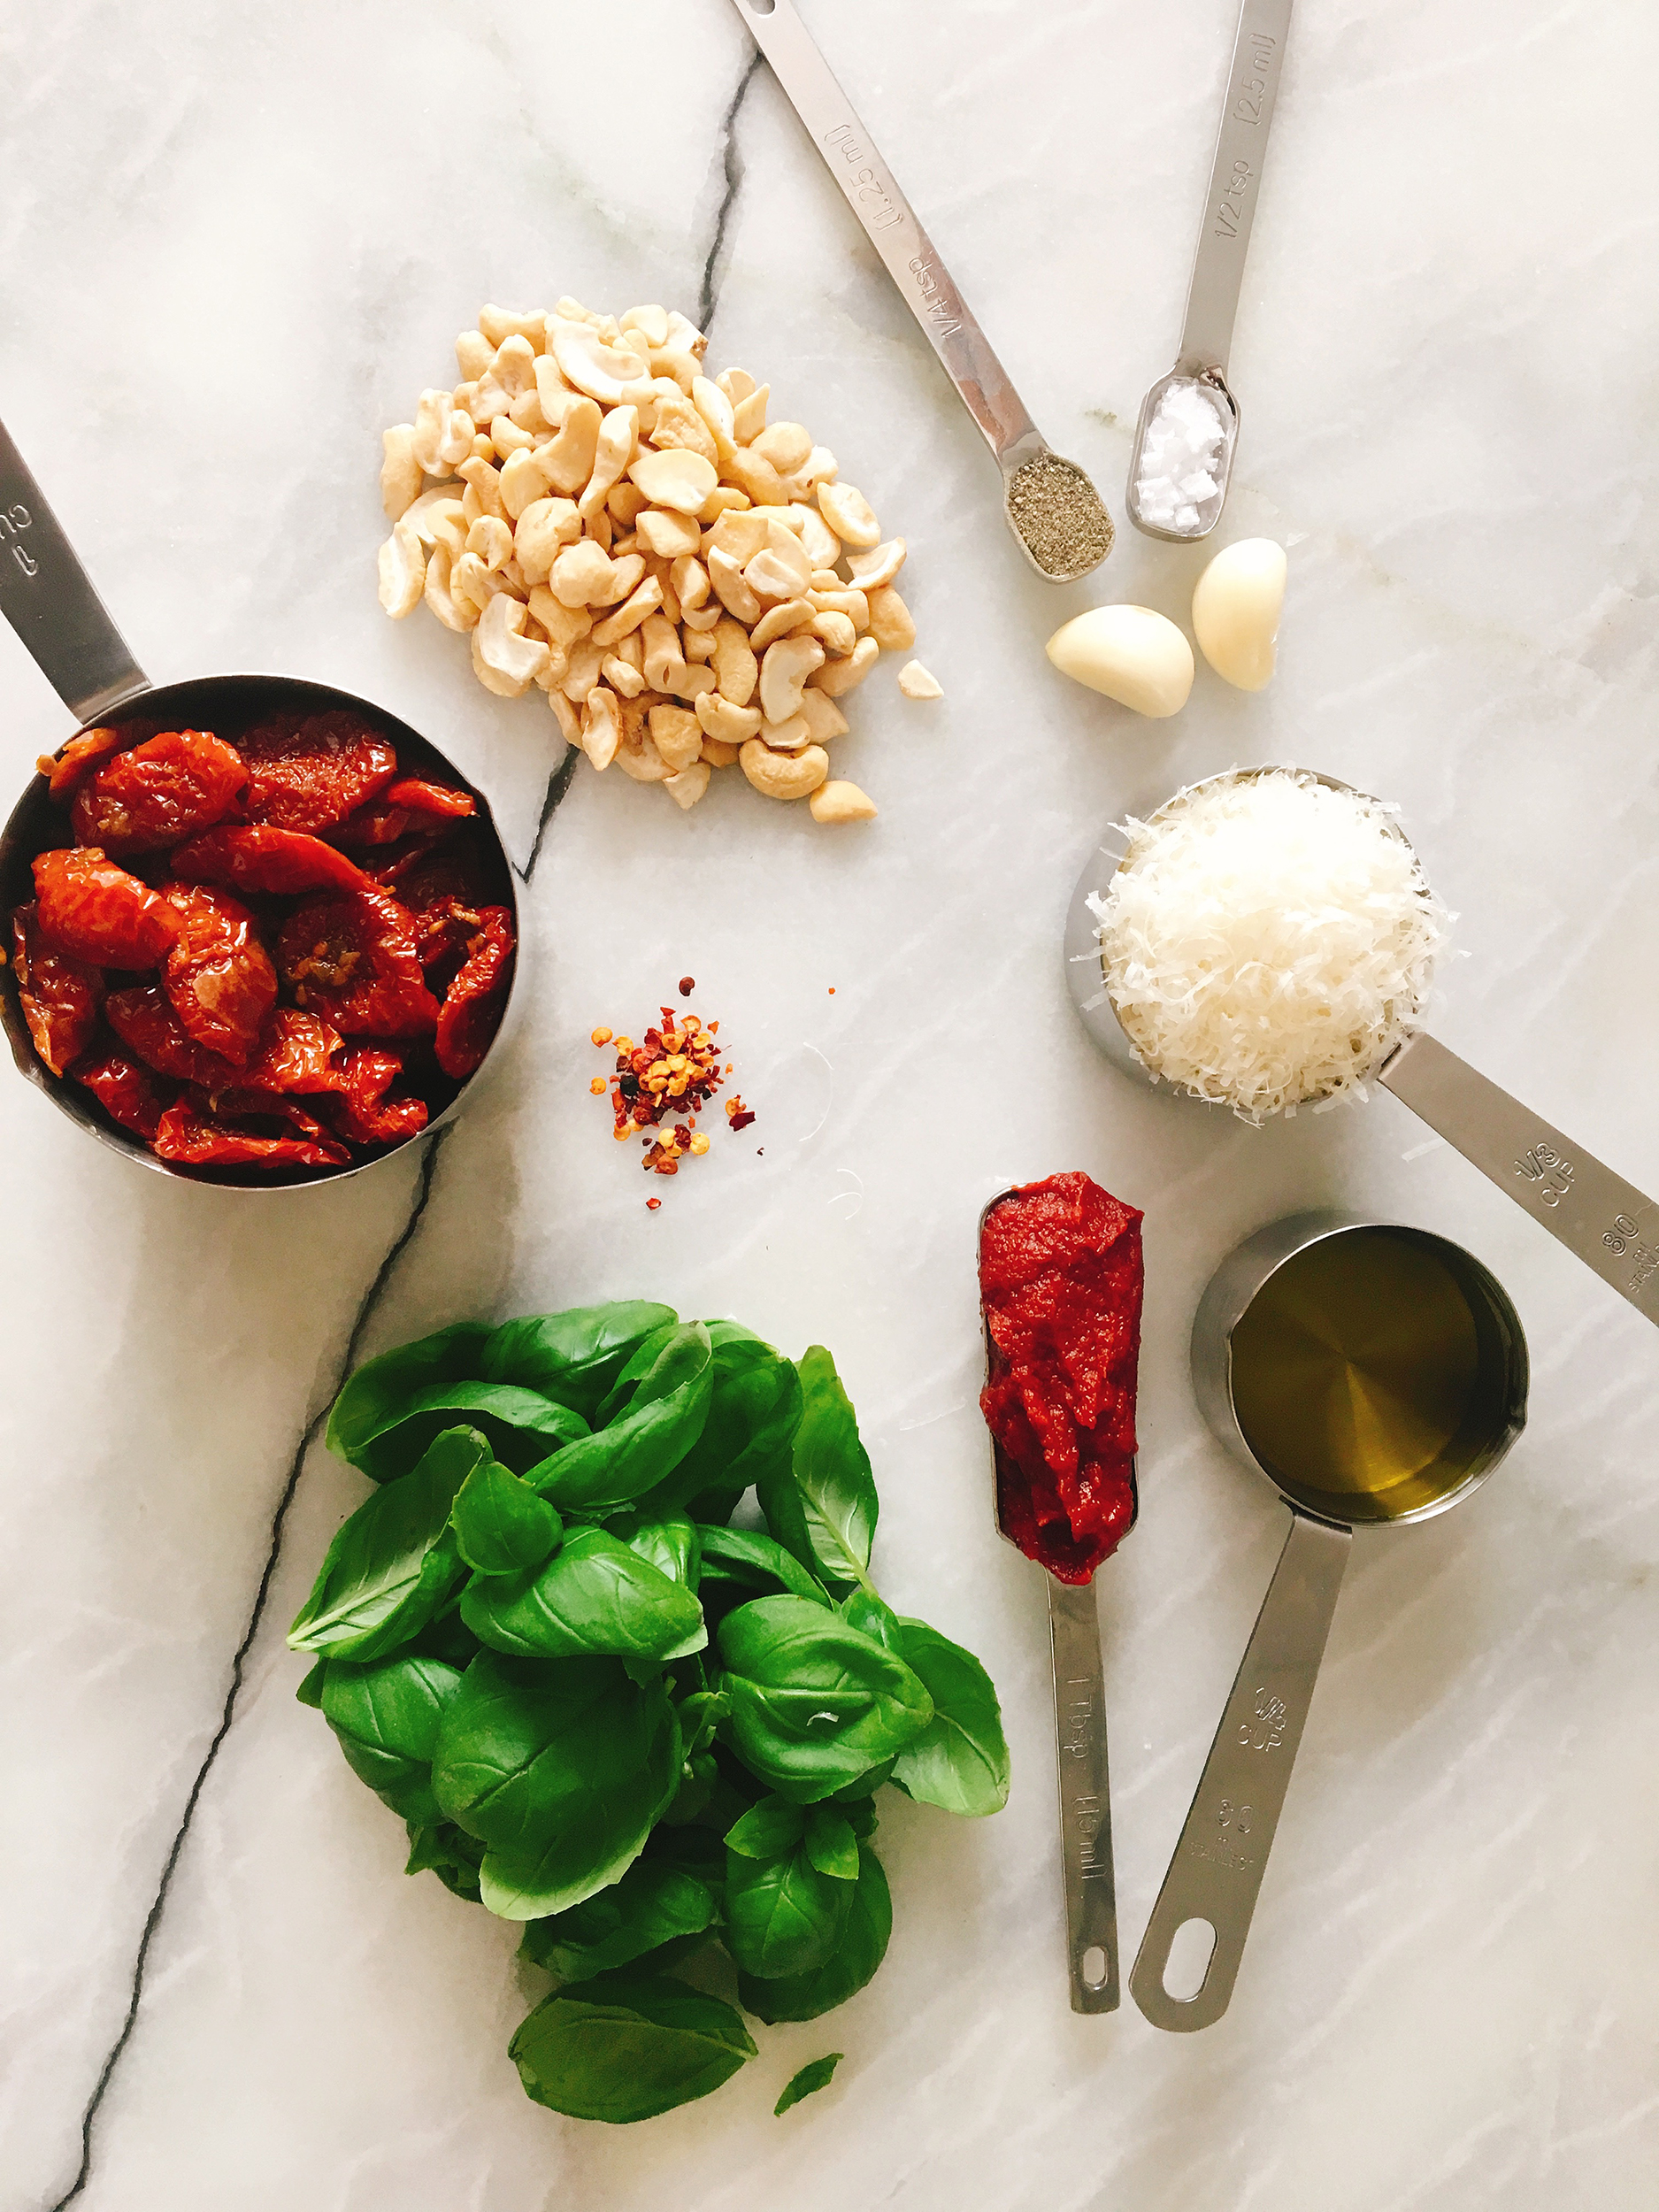 Tomato pesto ingredients